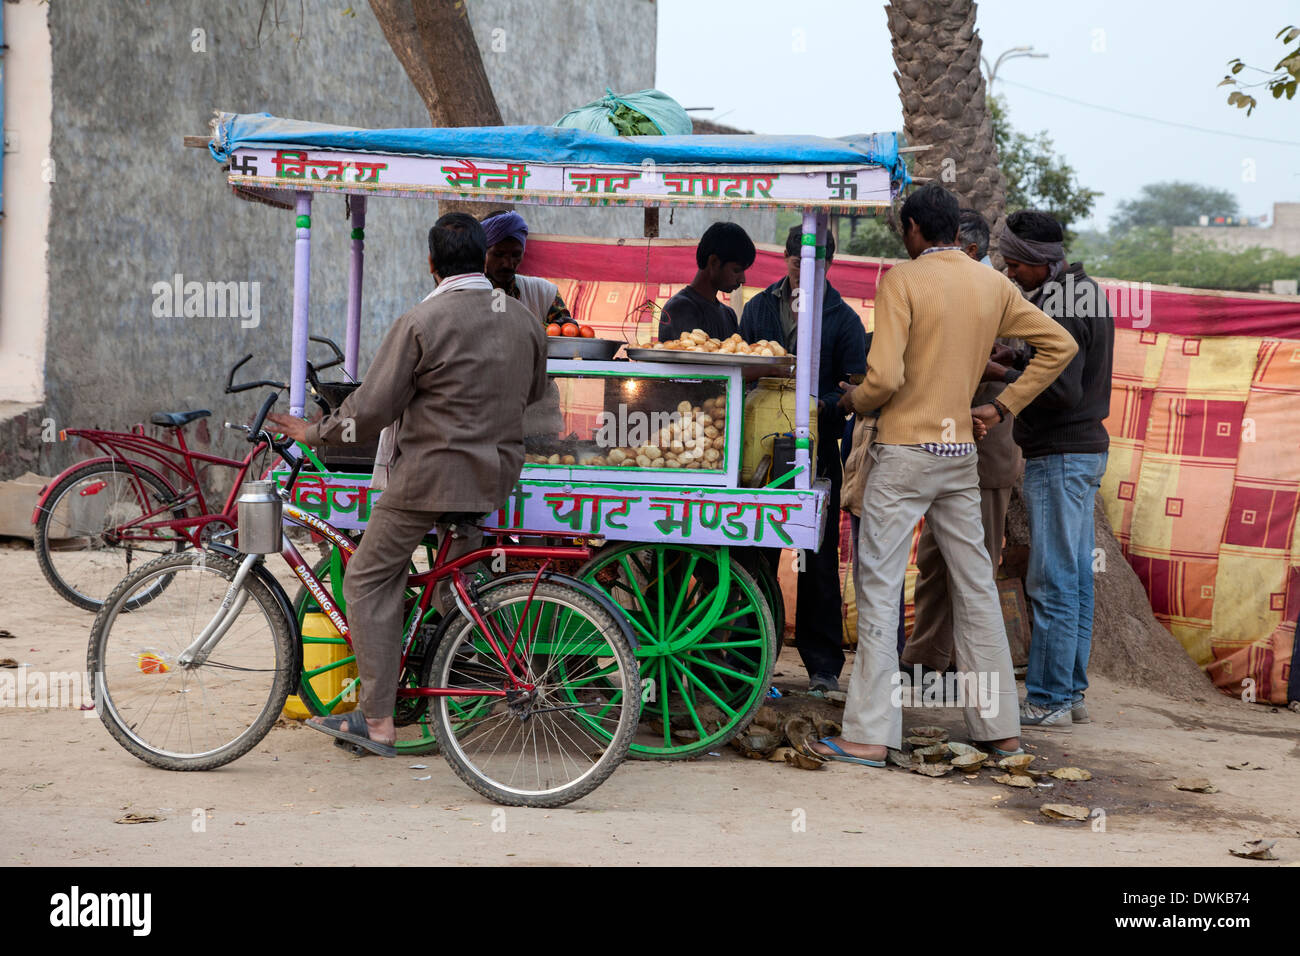 Bharatpur, Rajasthan, India. Local Fast Food Stand. - Stock Image